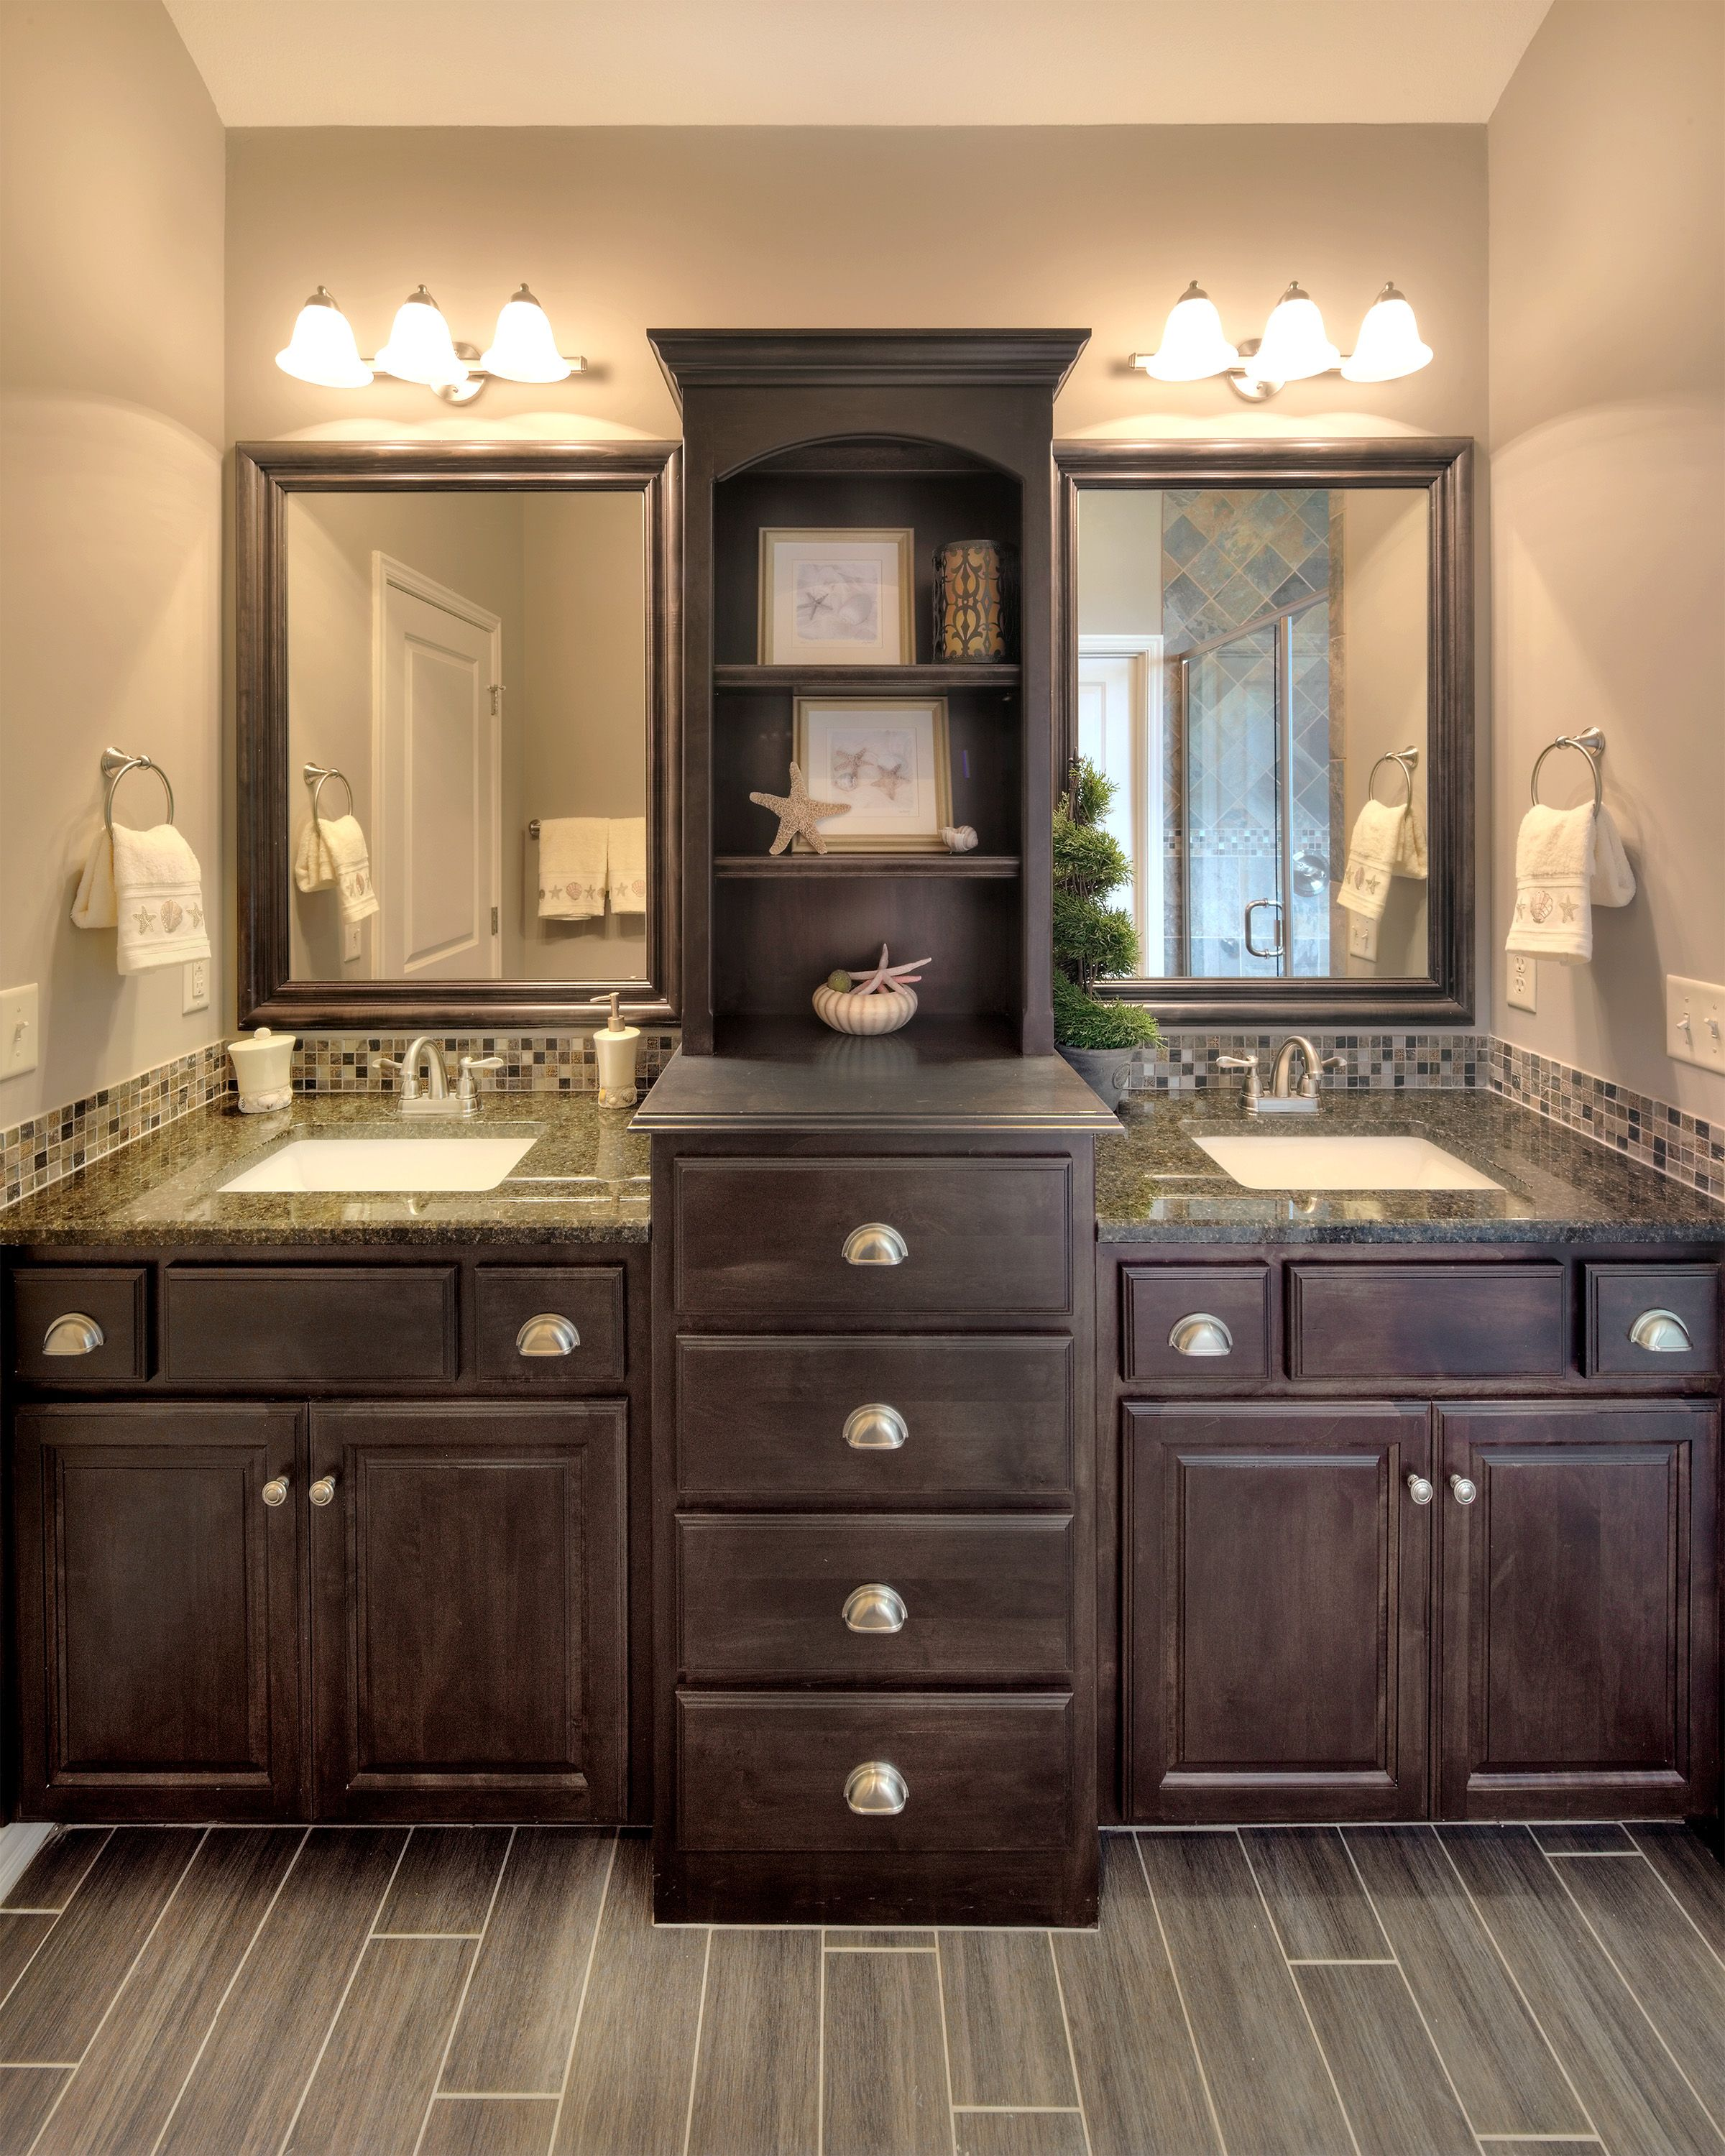 Image Result For Two Floor To Ceiling Cabinets Sink